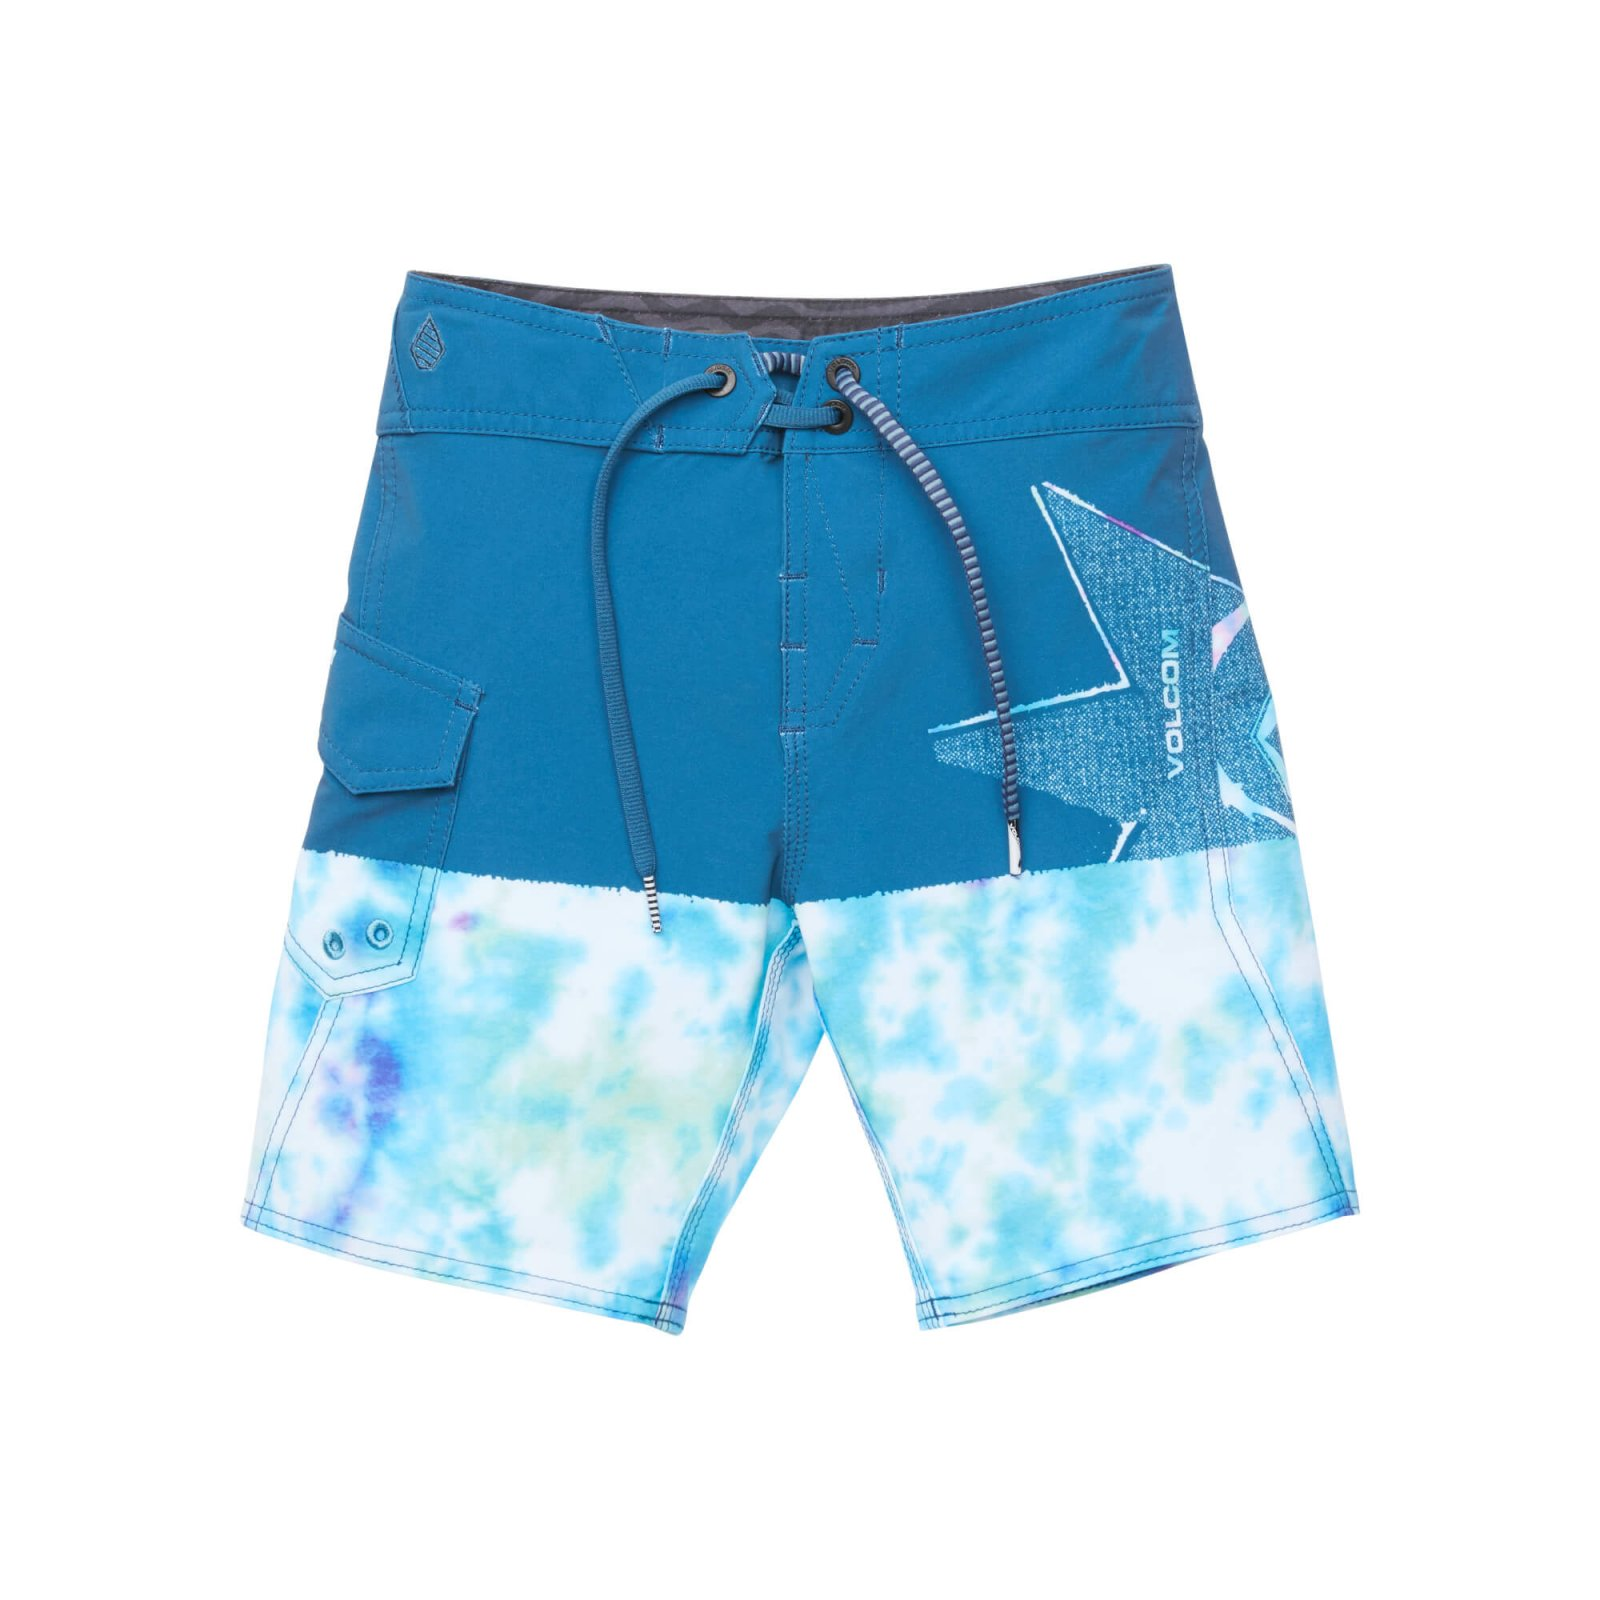 Volcom Boys Lido Block Mod Boardshort Multi